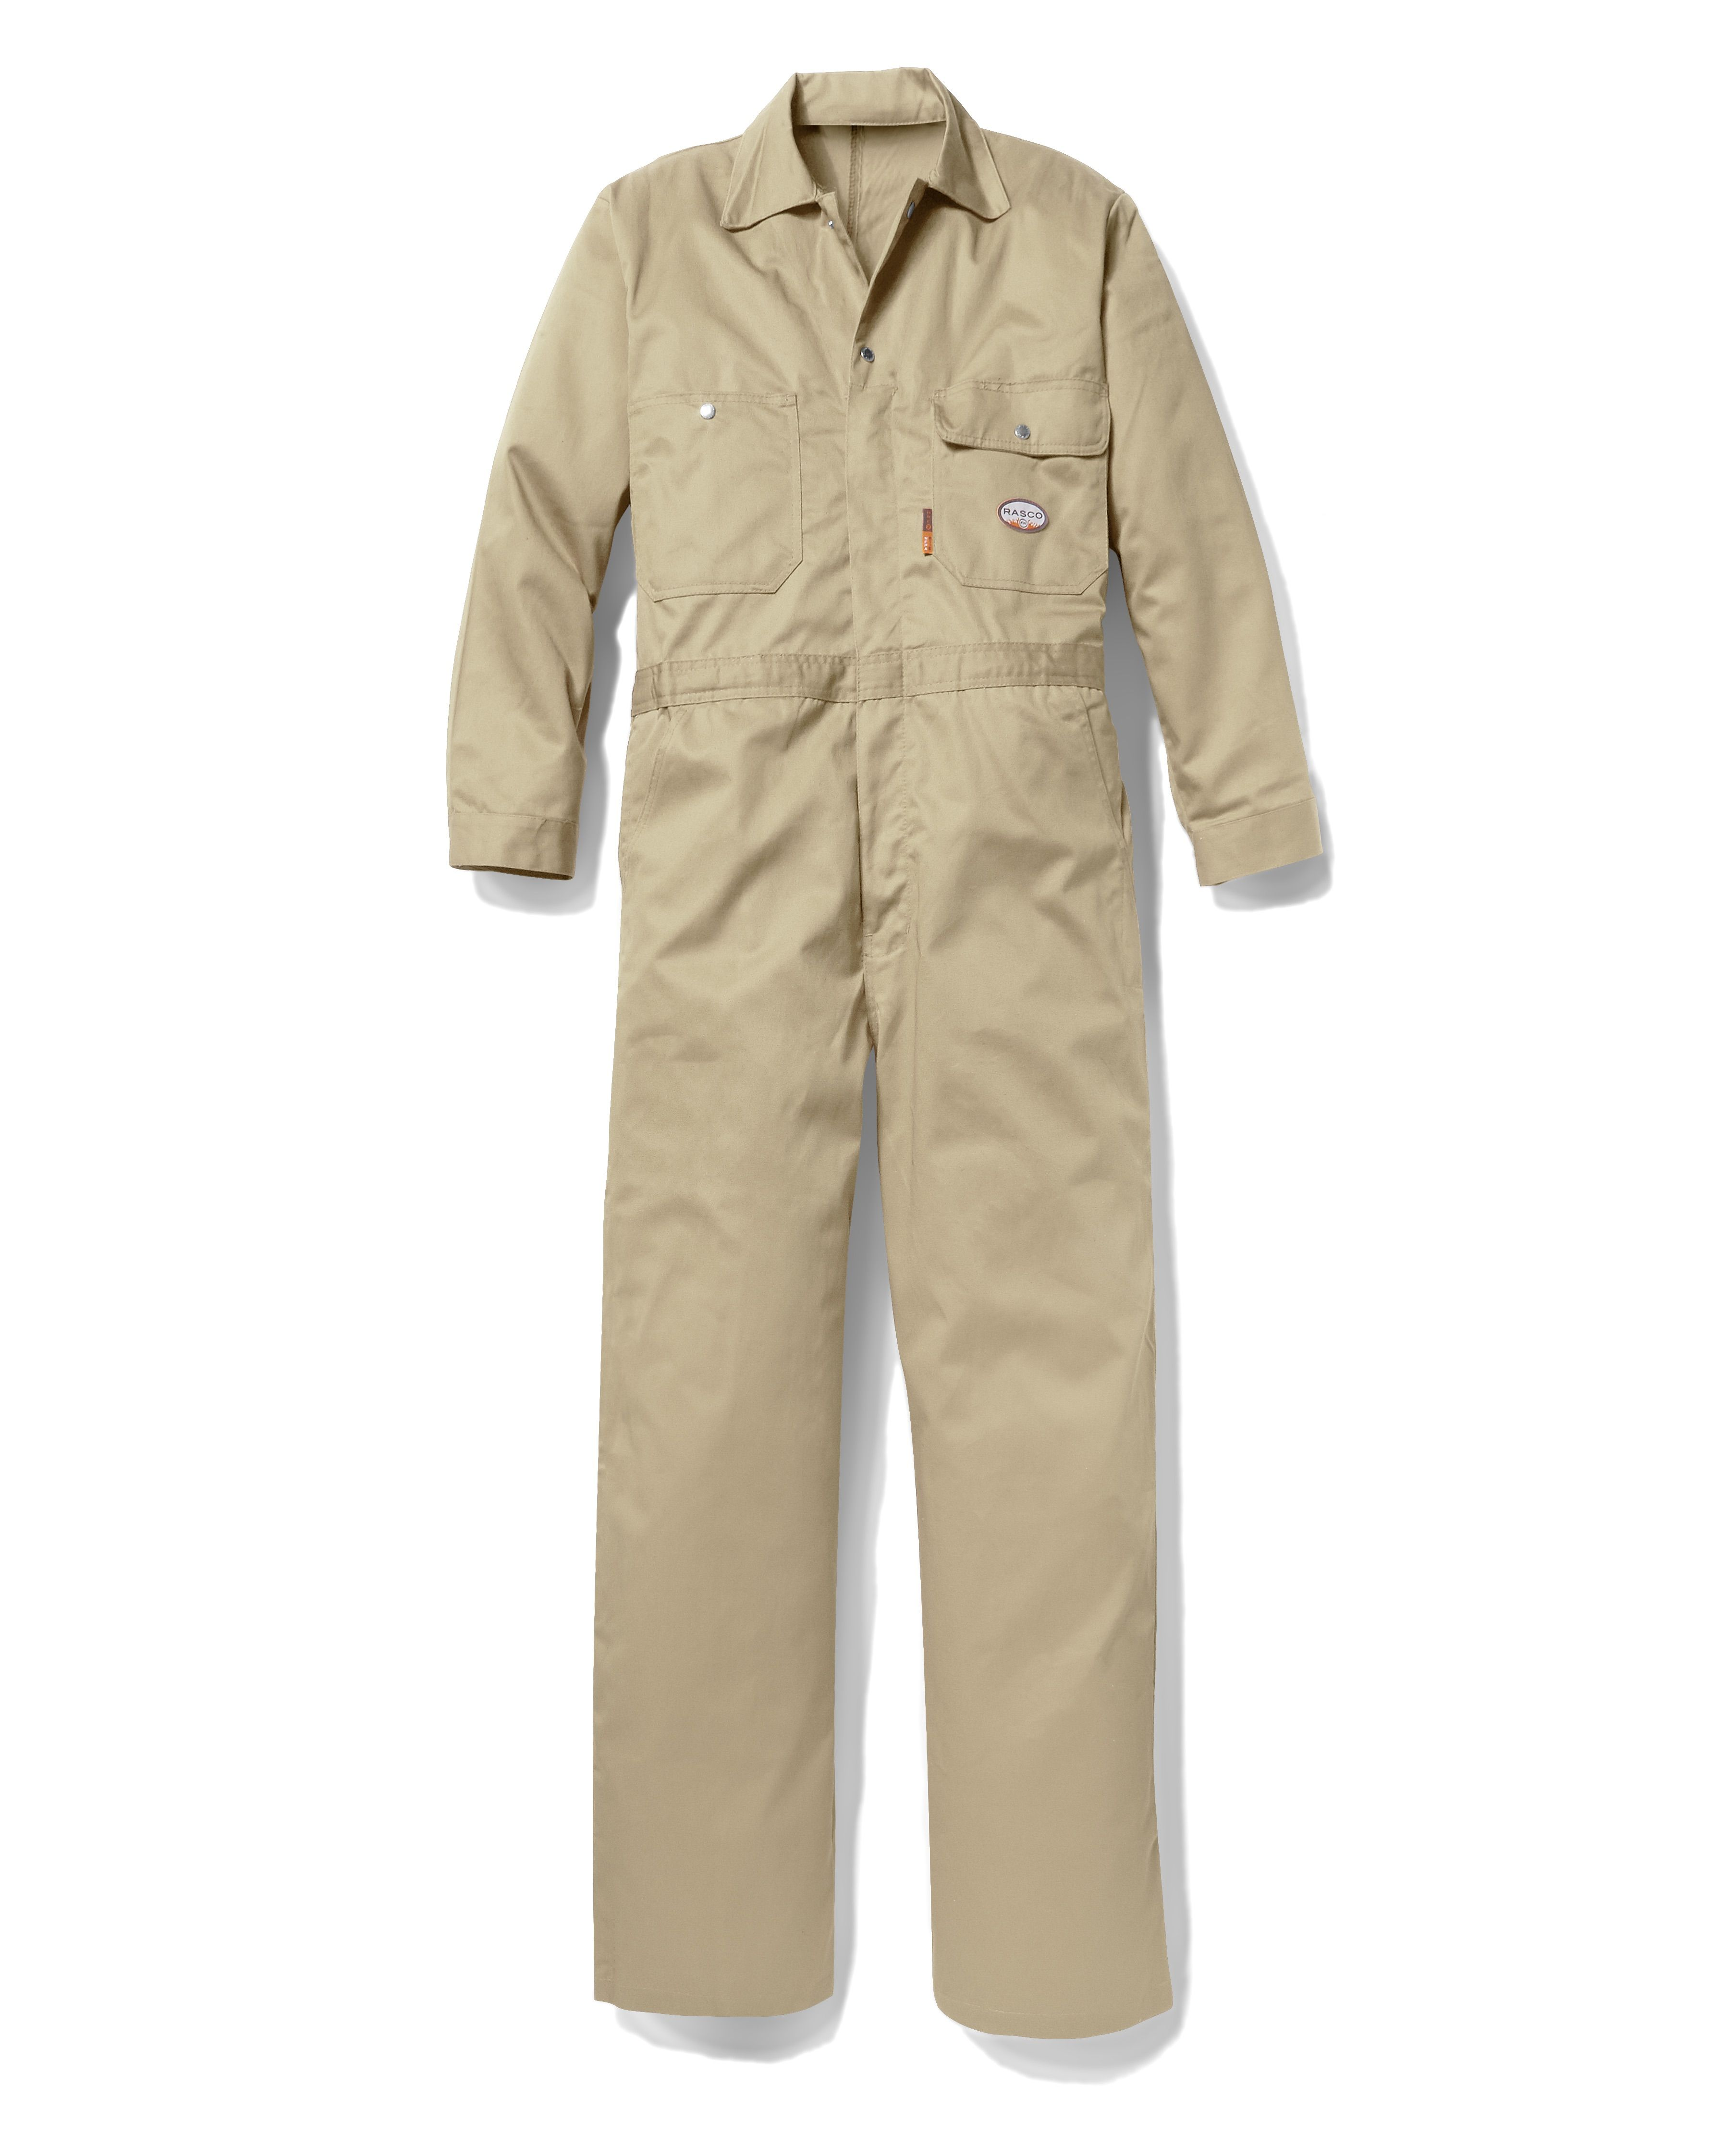 5a73d944a00c Buy 7.5oz Coverall - Rasco FR Online at Best price - CO